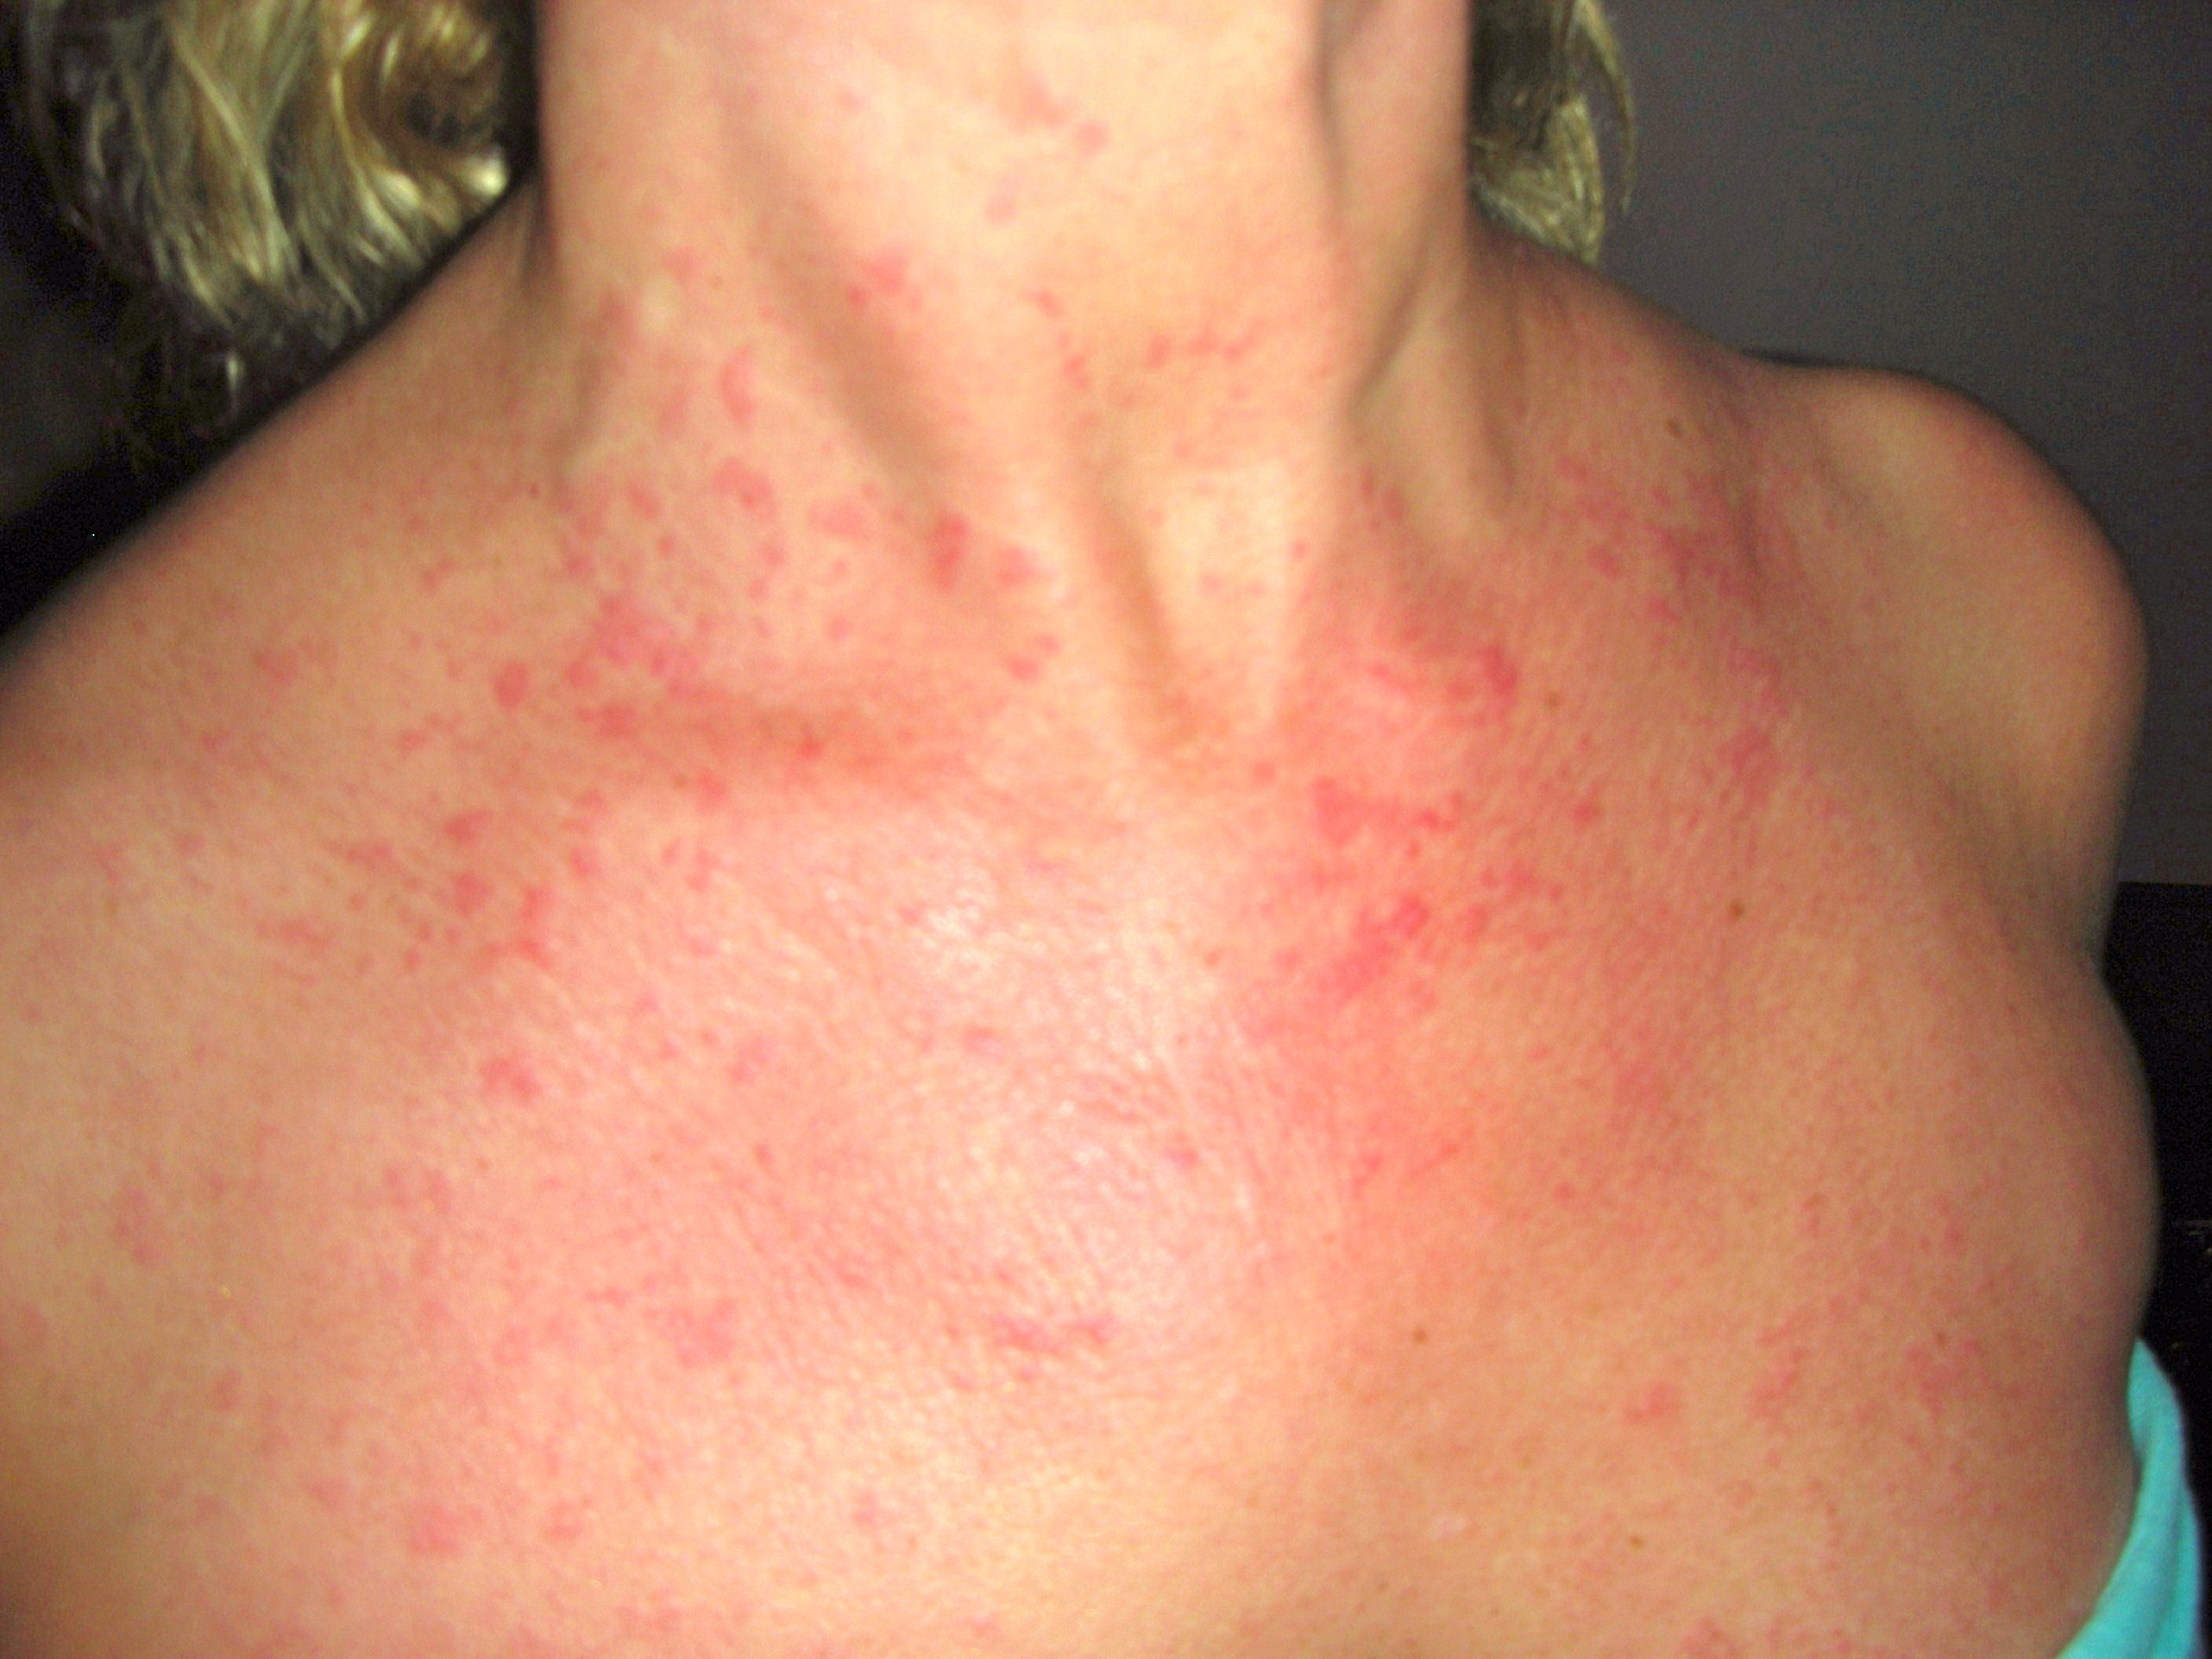 raised rash on neck #10